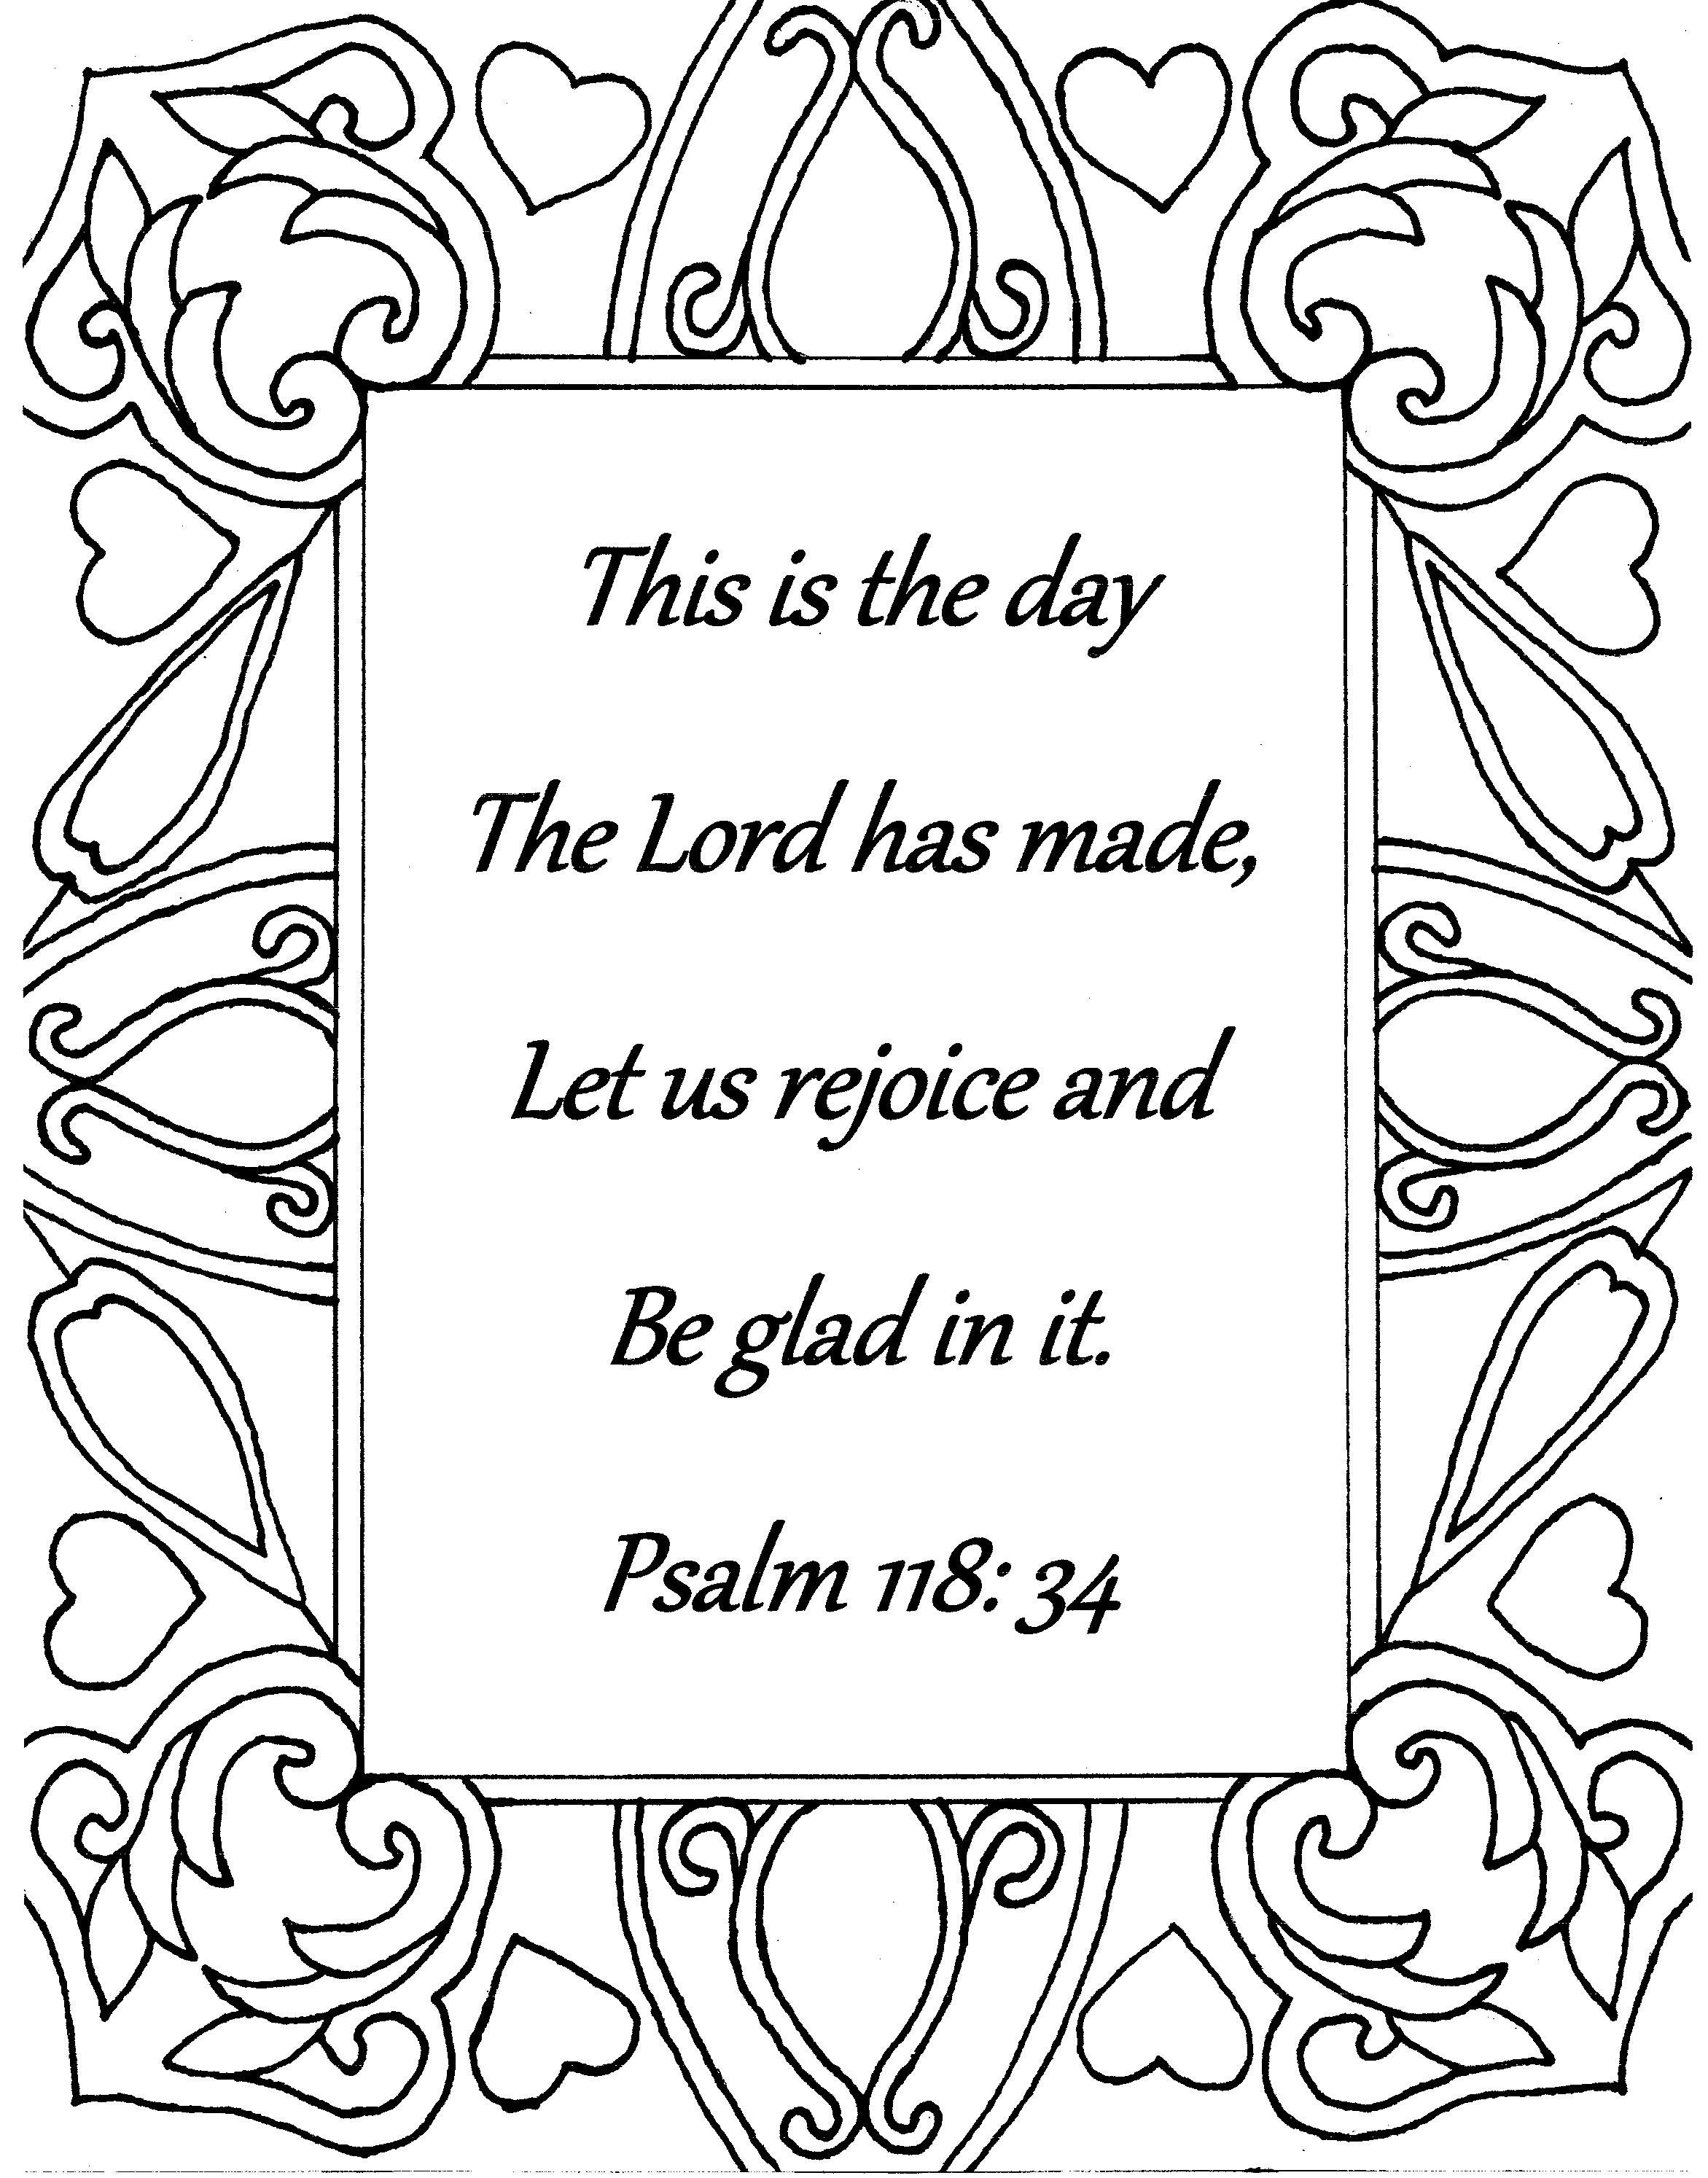 This is the day The Lord has made, Psalms 118:34, Bible